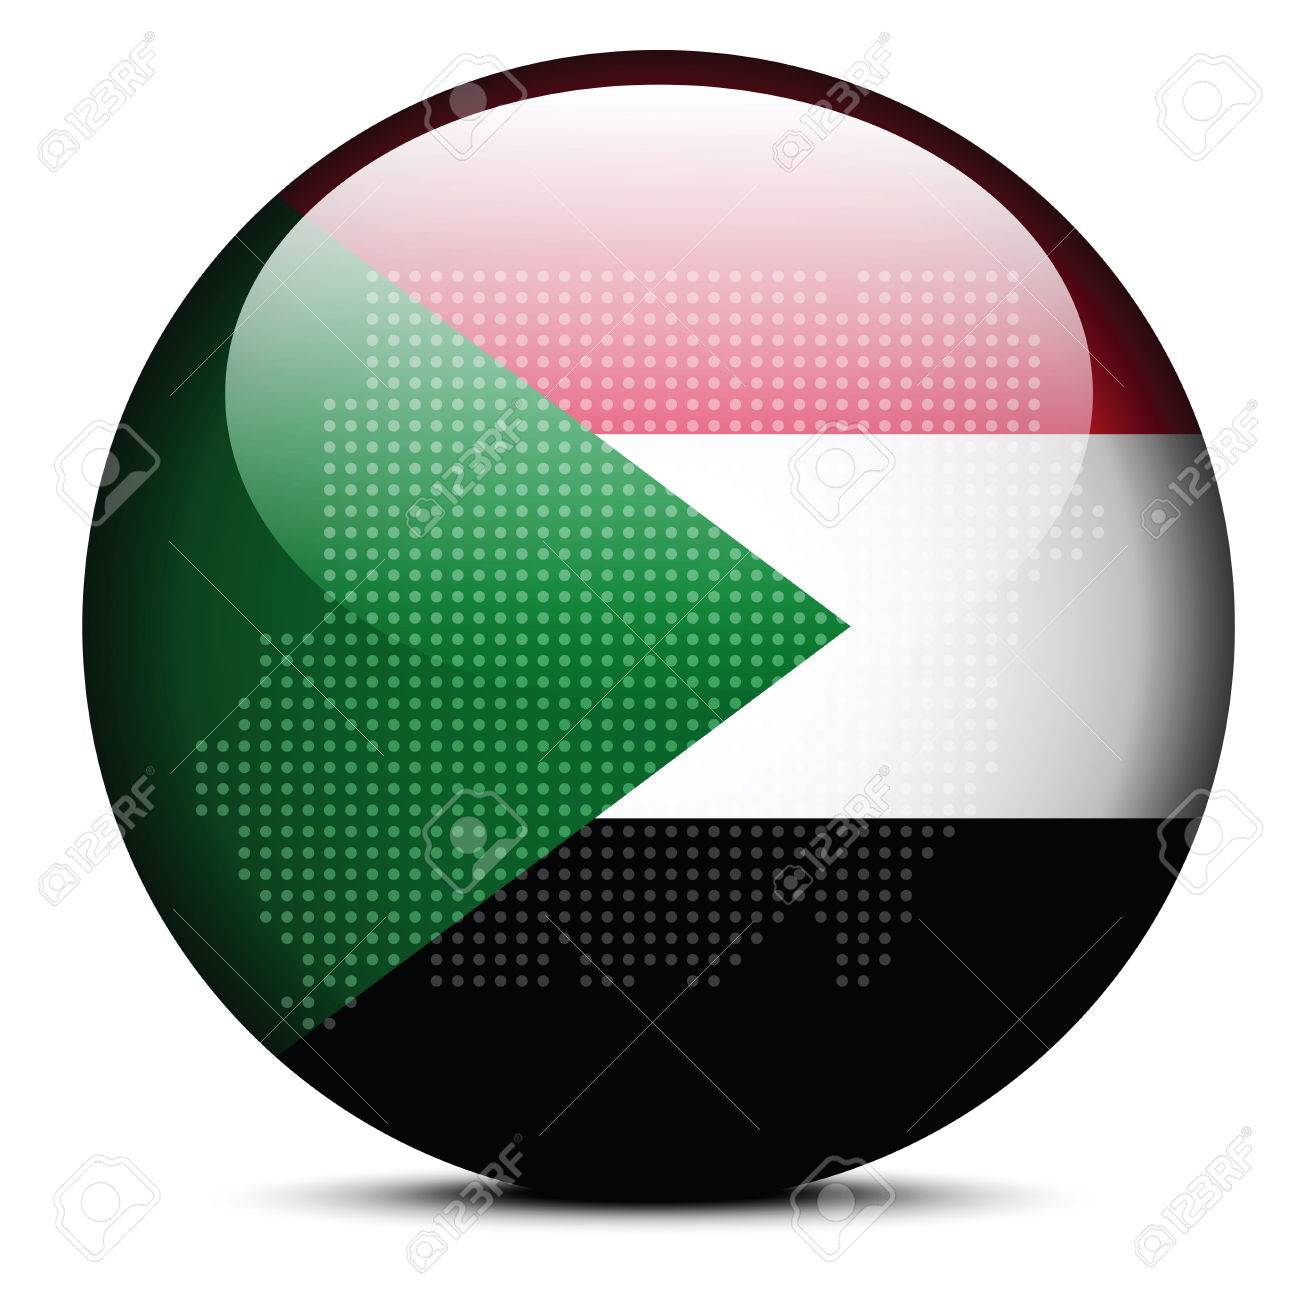 Vector Image Map With Dot Pattern On Flag Button Of Republic - Republic of the sudan map